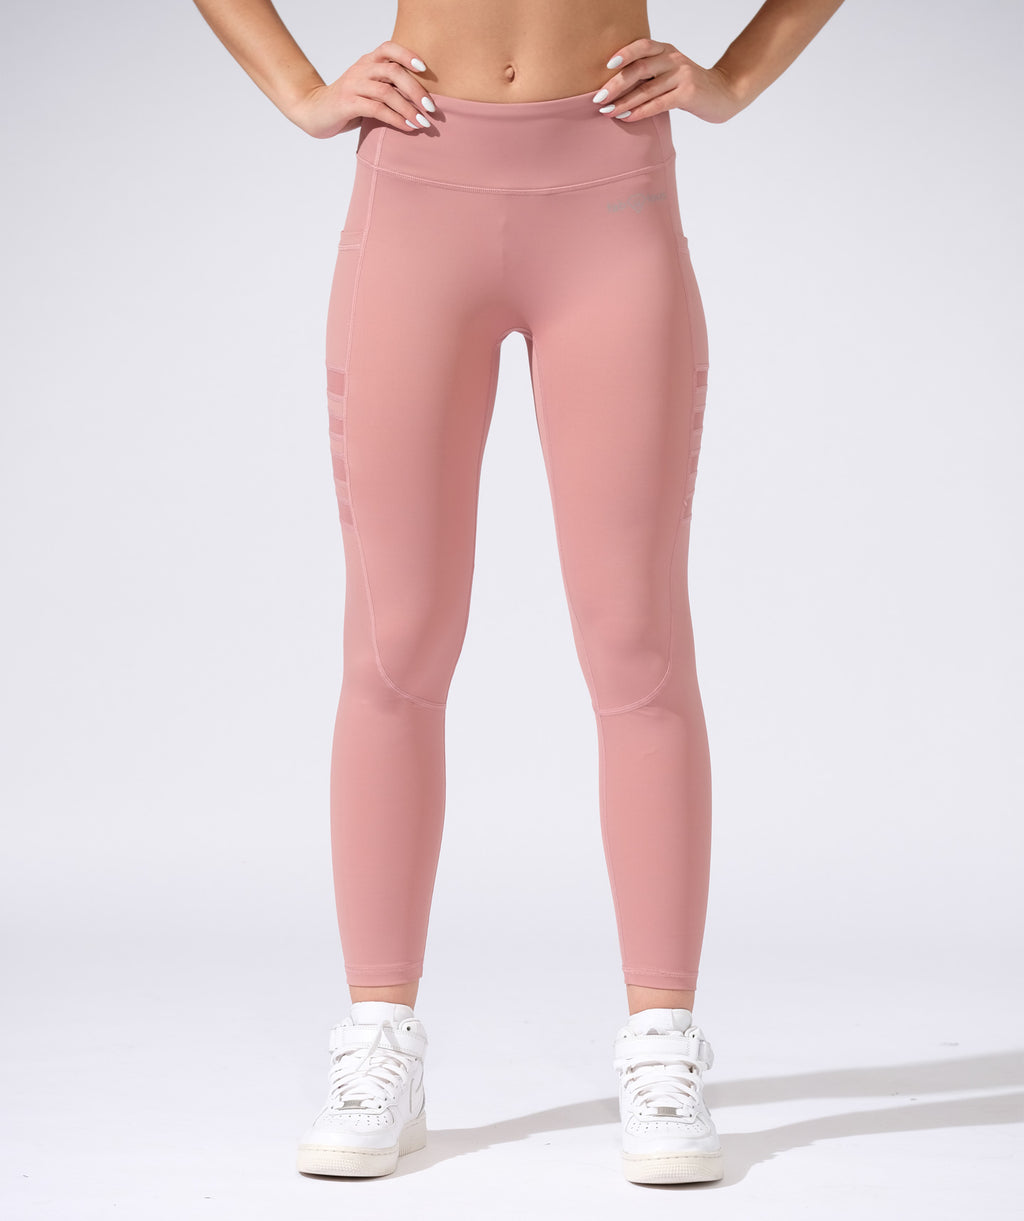 TechFit Leggings Pink